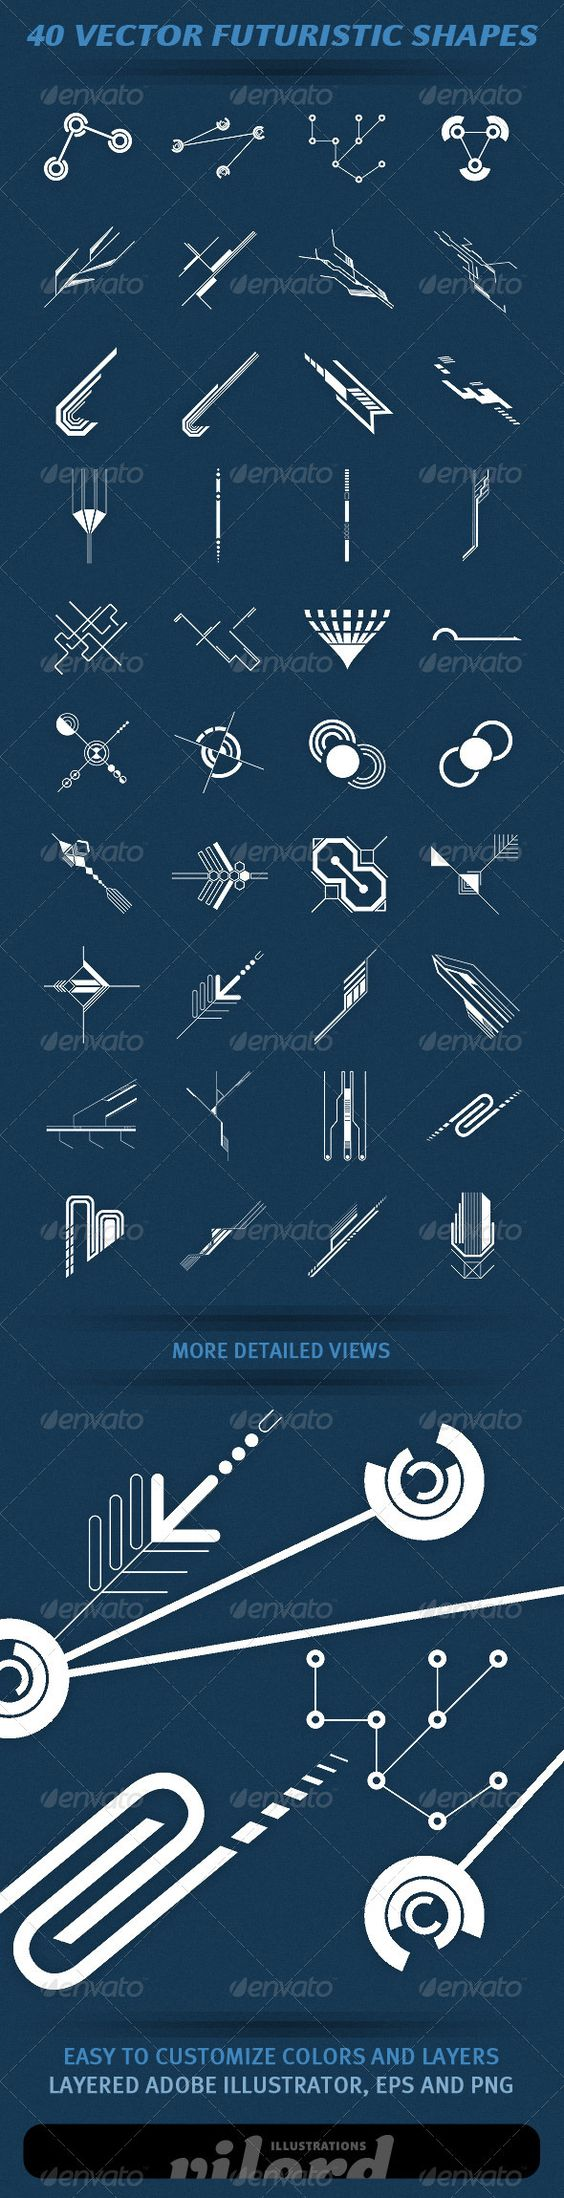 best images about vector on pinterest geometry logos and